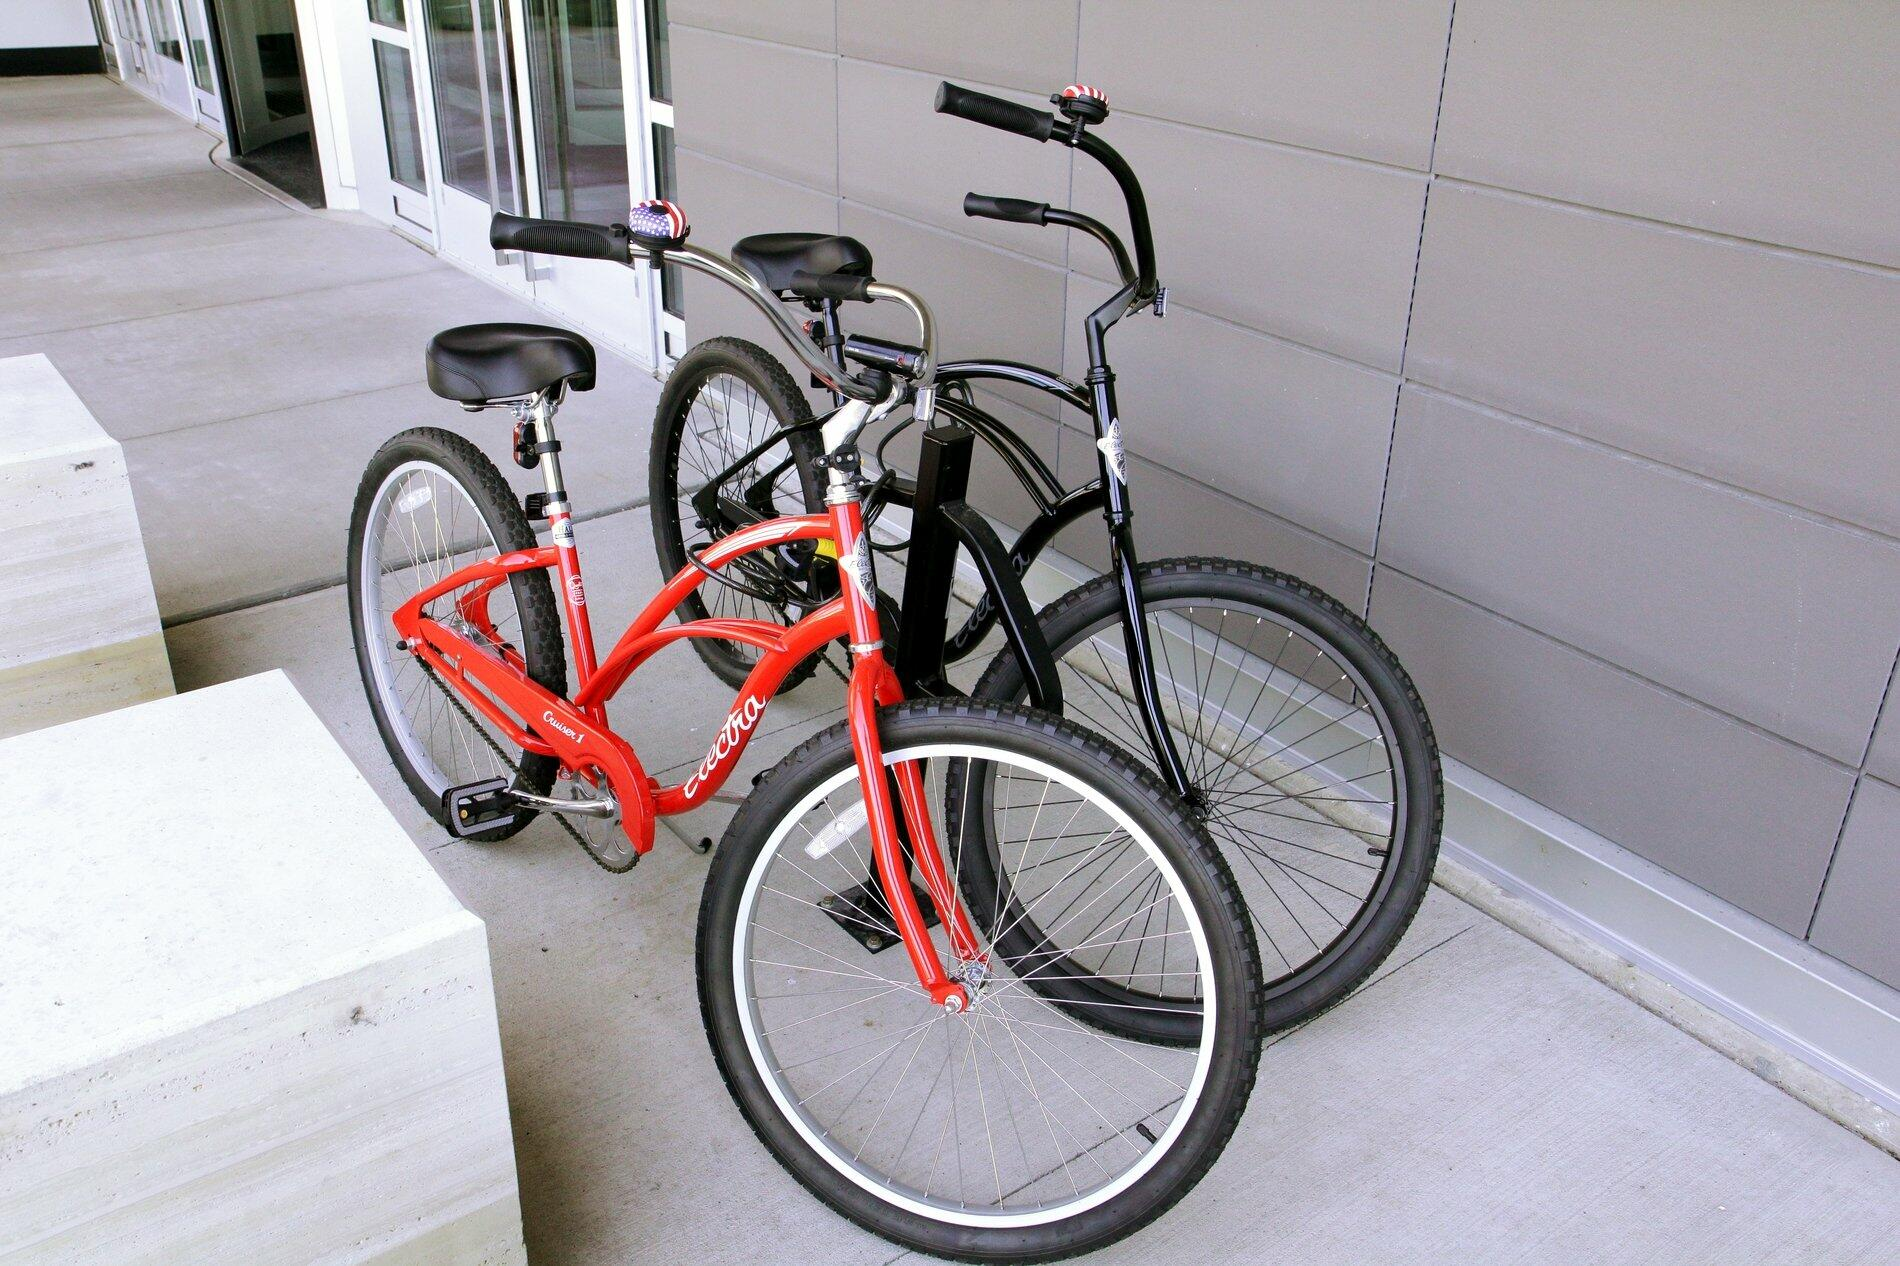 A pair of bicycles